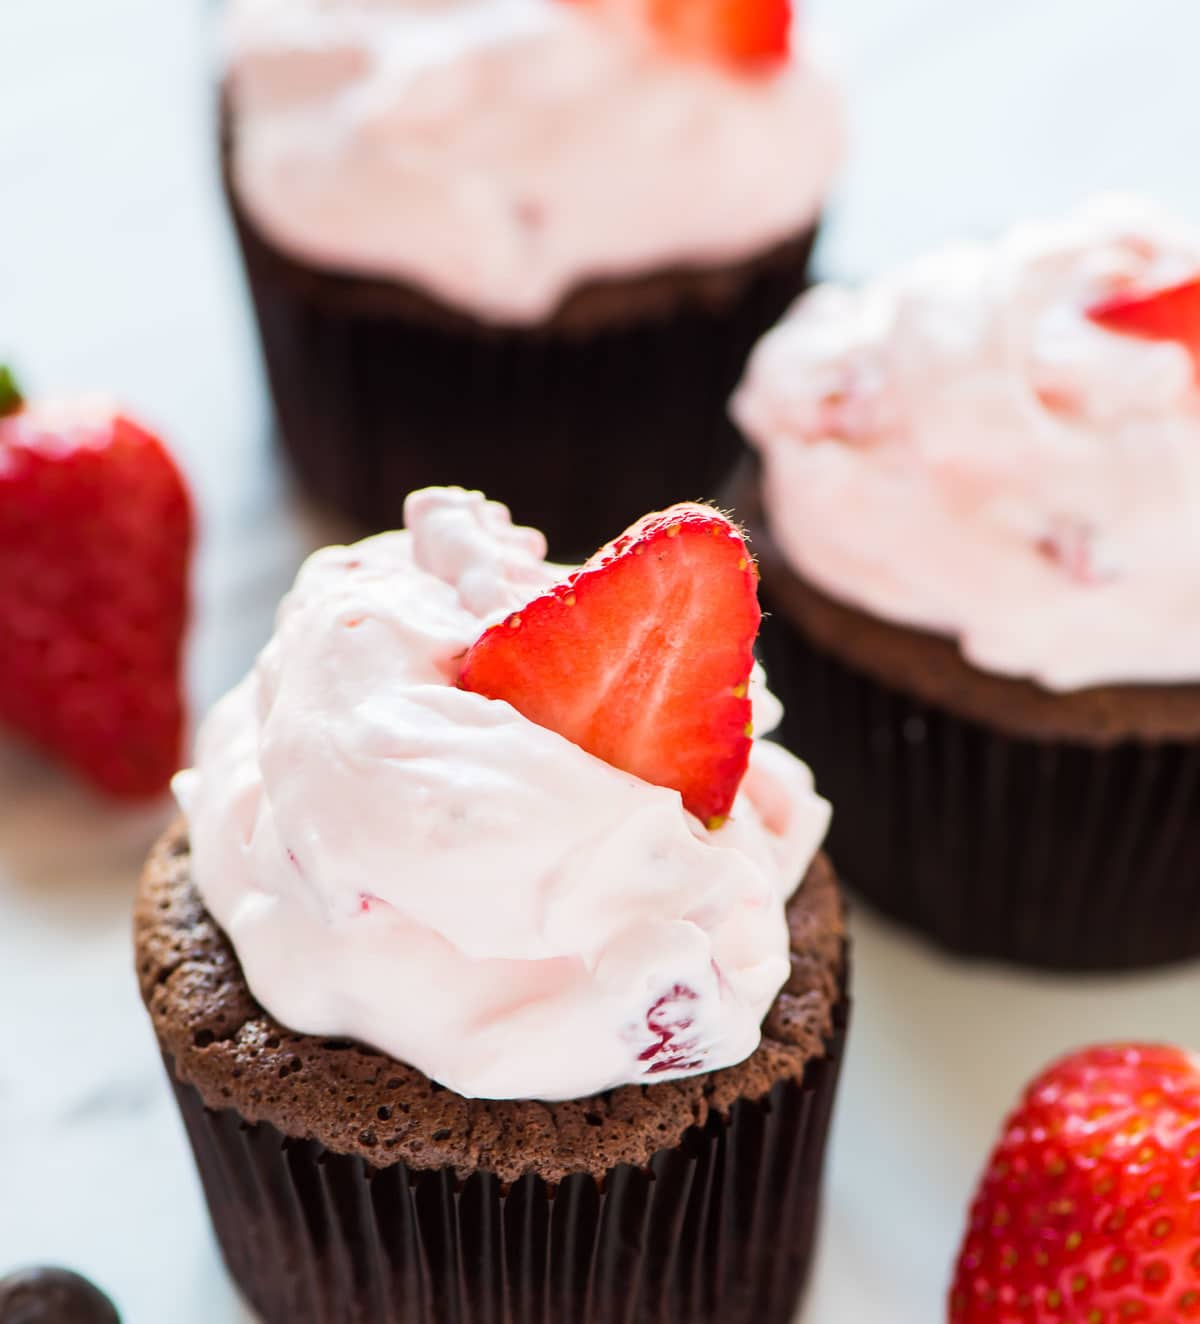 Chocolate Mousse Cupcakes. Rich, silky, chocolate cupcakes, topped with fluffy Strawberry Cream Cheese Frosting. TO DIE FOR! Recipe at wellplated.com | @wellplated